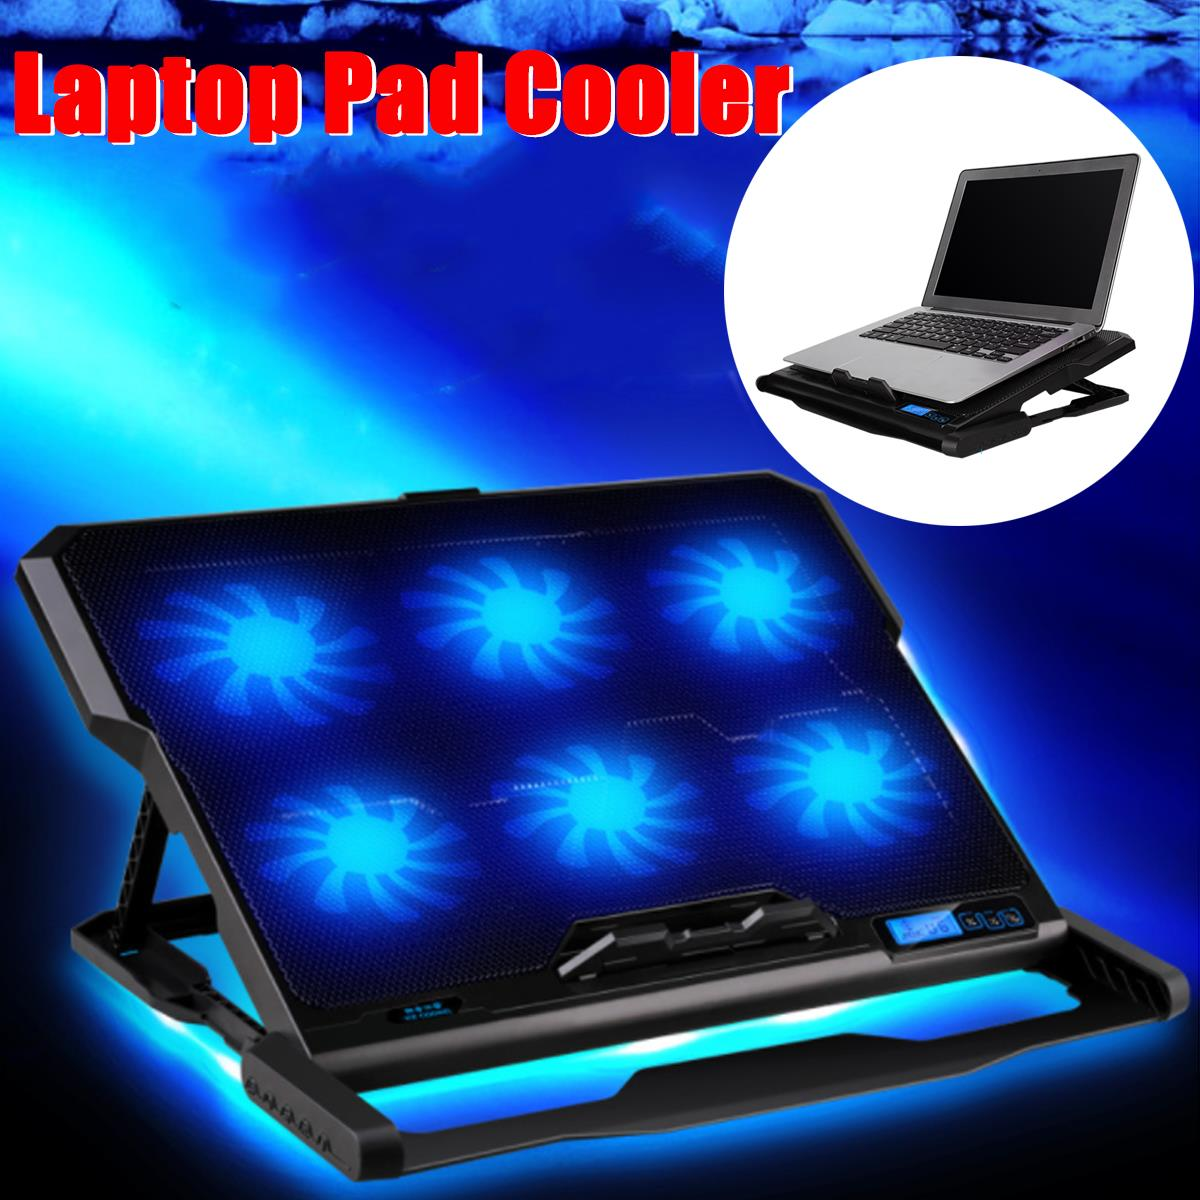 Adjustable Laptop Cooling Pad USB Cooler 6 Cooling Fans With Stand For 12-15.6 inch Laptop Use